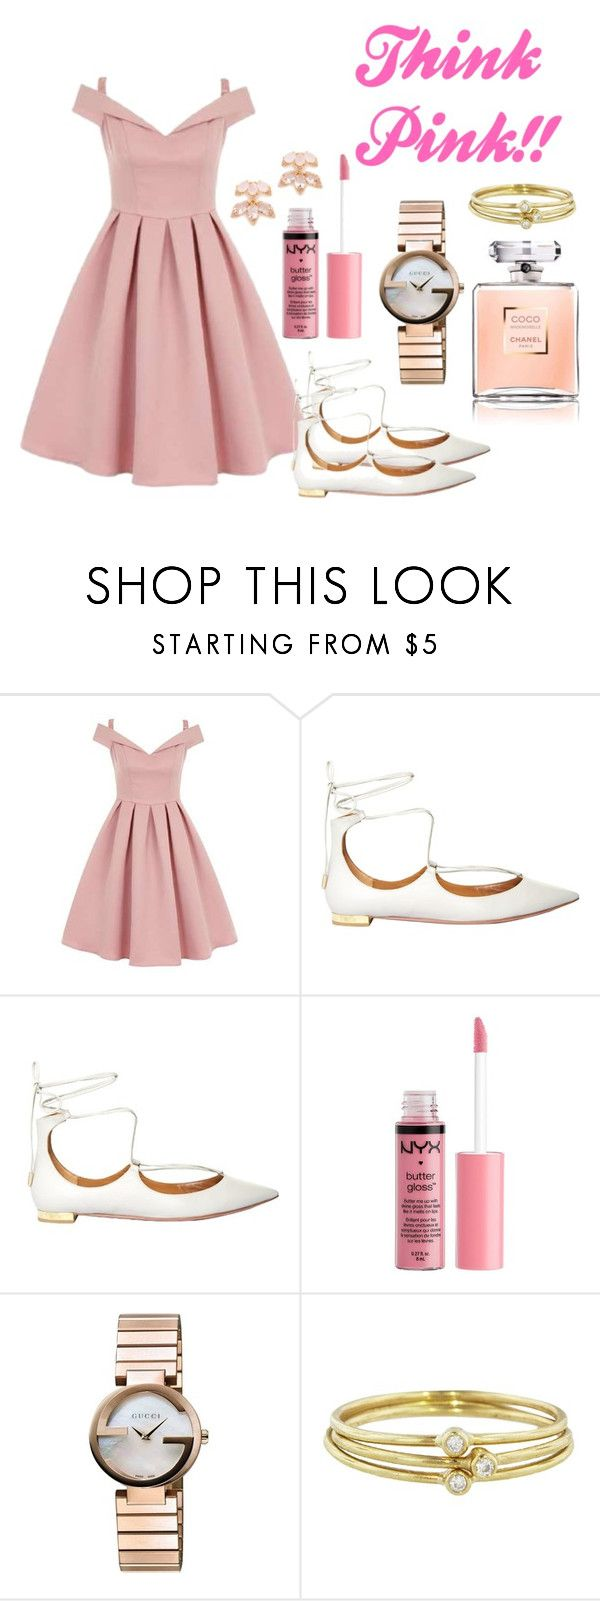 """Think Pink!!"" by lana-246 ❤ liked on Polyvore featuring Chi Chi, Aquazzura, Charlotte Russe, Gucci, Jennifer Meyer Jewelry and Kate Spade"